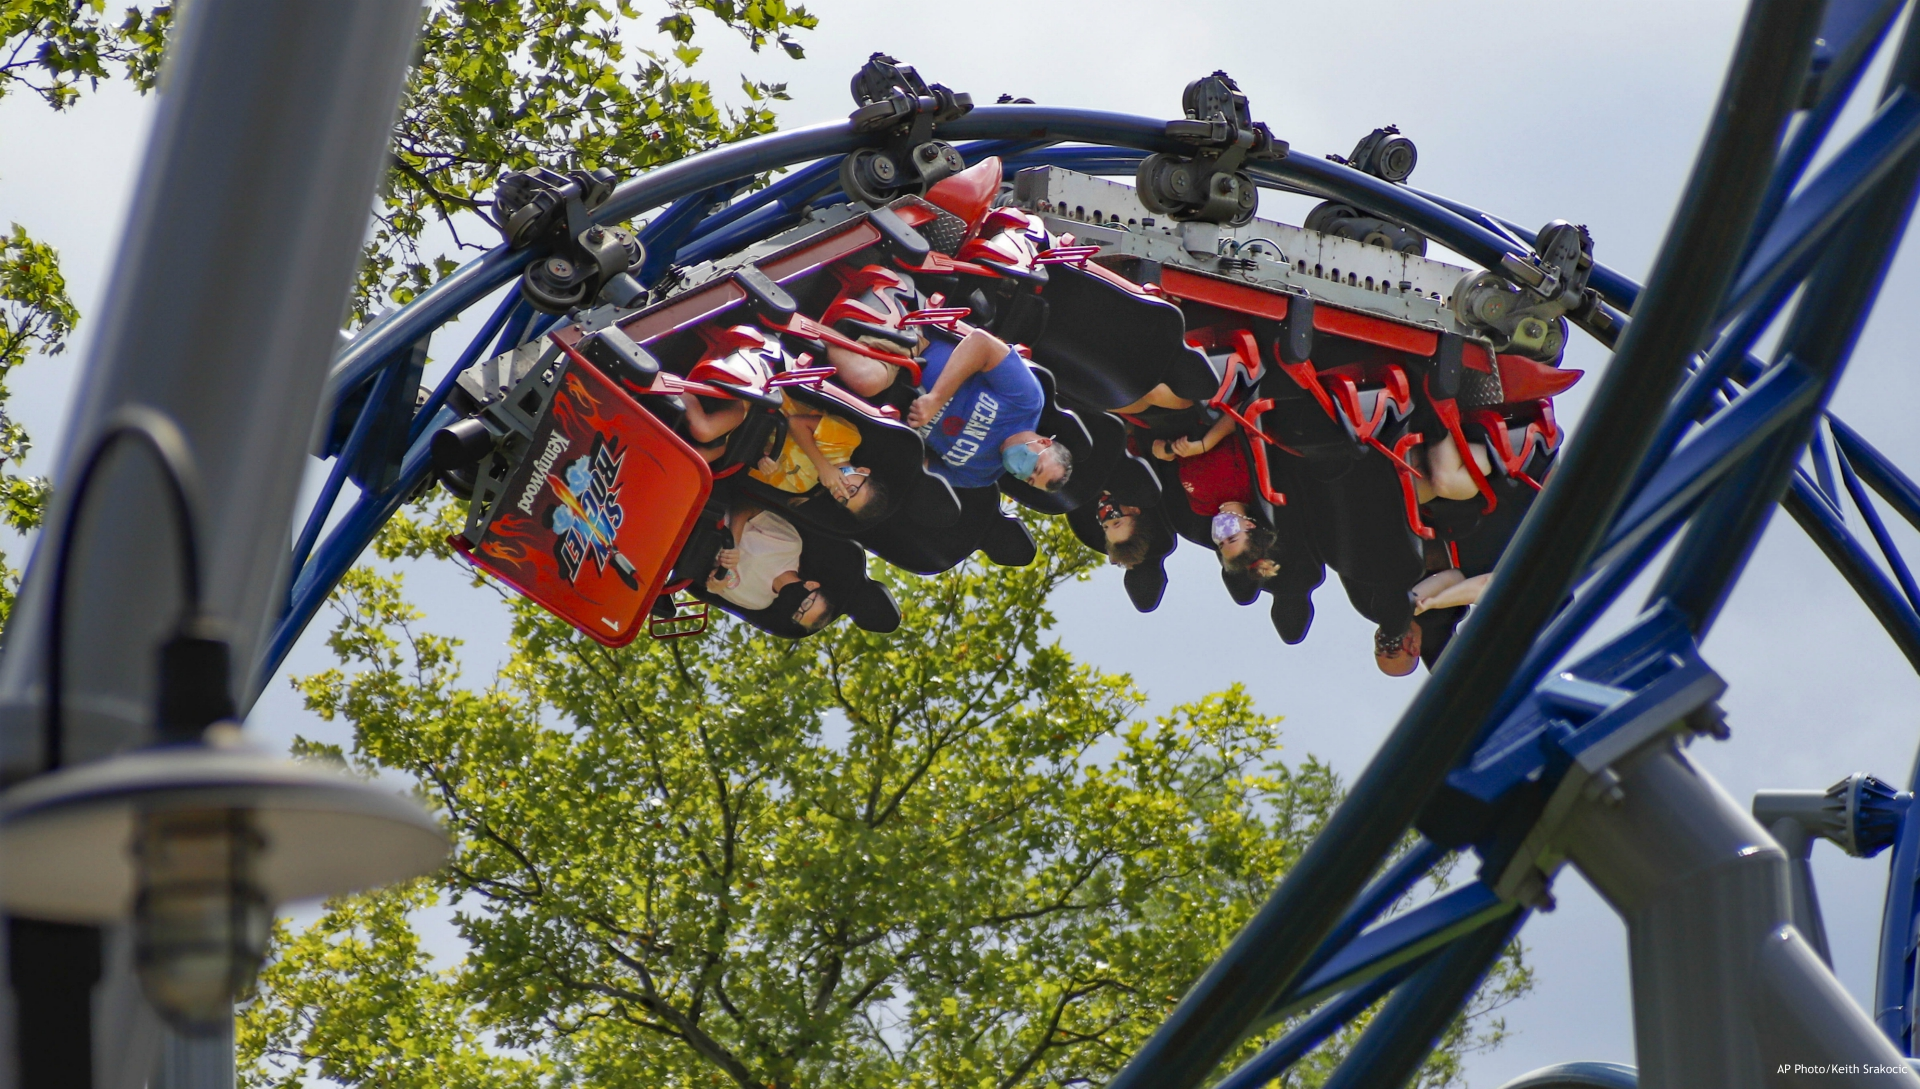 """In this photo made on Saturday, Aug. 29, 2020, riders of the """"Phantoms Revenge"""" roller coaster are inverted as they go through a loop during the ride at Kennywood Park in West Mifflin, Pa. Visitors have been slow to return to U.S. theme parks that saw their seasons interrupted by the coronavirus crisis, causing some parks to reduce their operating days, slash ticket prices and close early for the year. (AP Photo/Keith Srakocic)"""